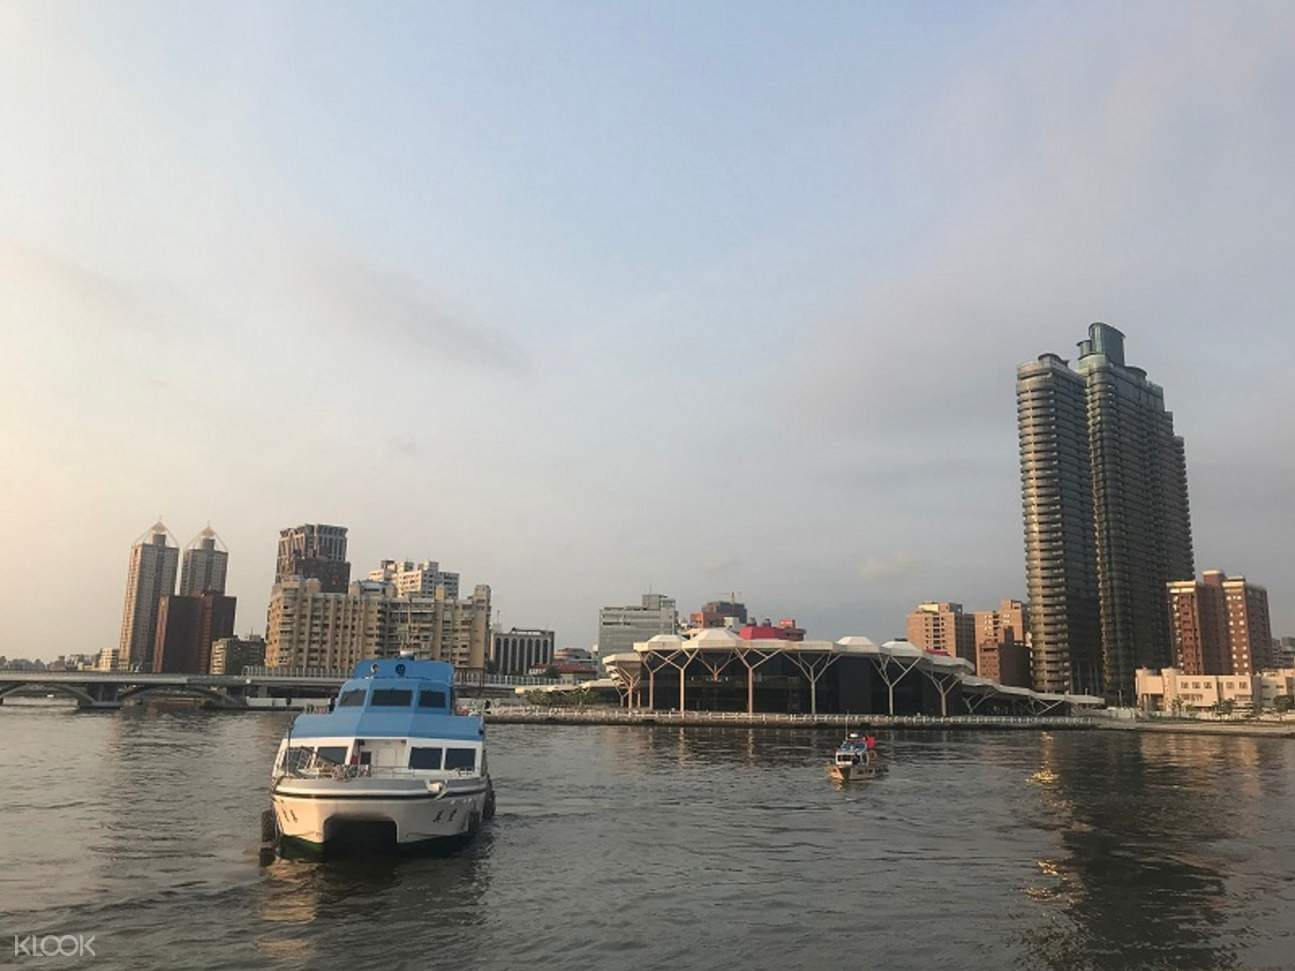 boat and city skyline in kaohsiung harbour